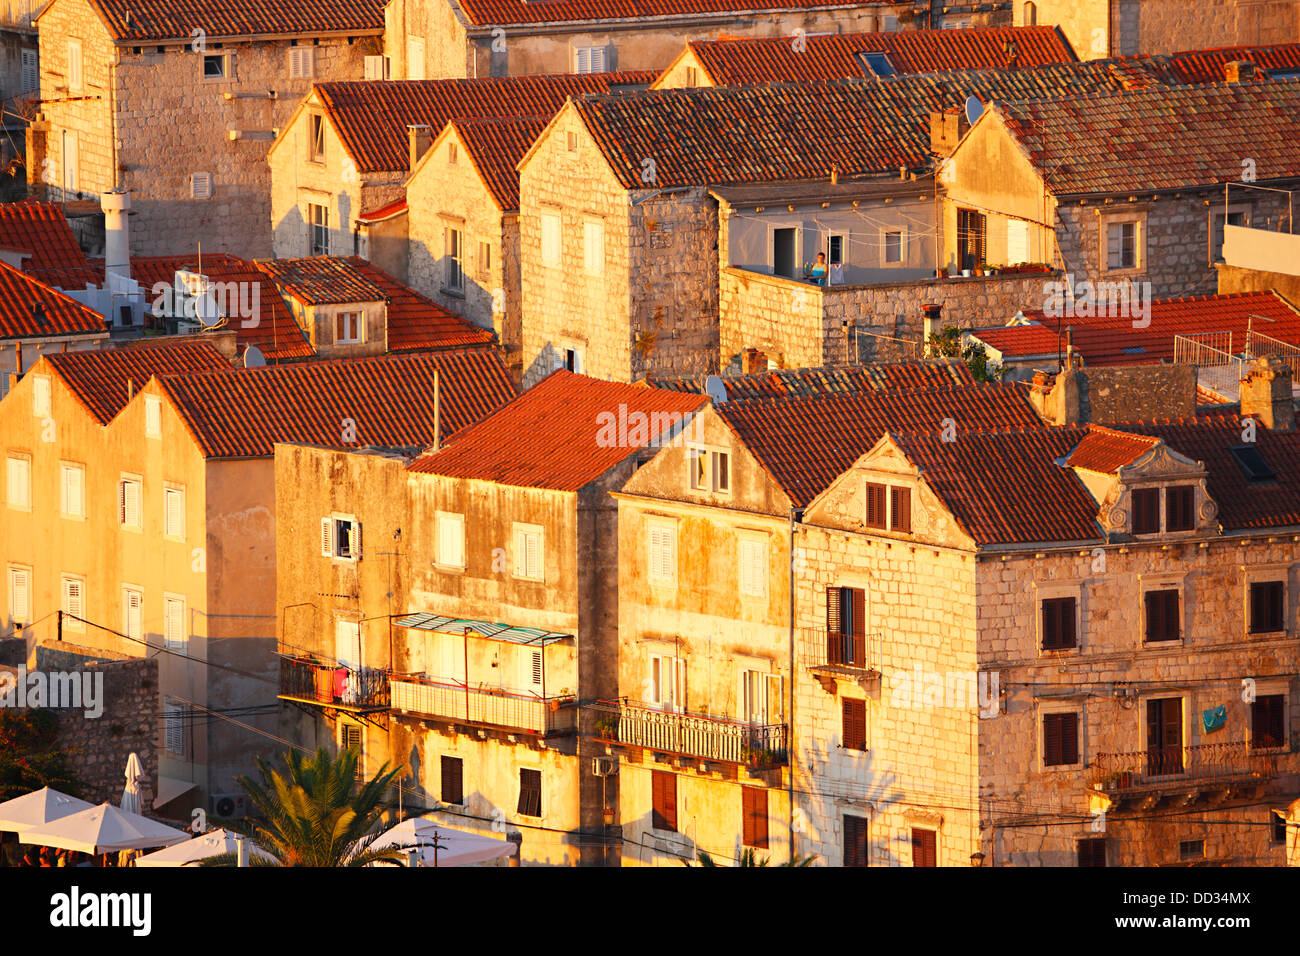 Korcula, old houses close up at sunset. - Stock Image